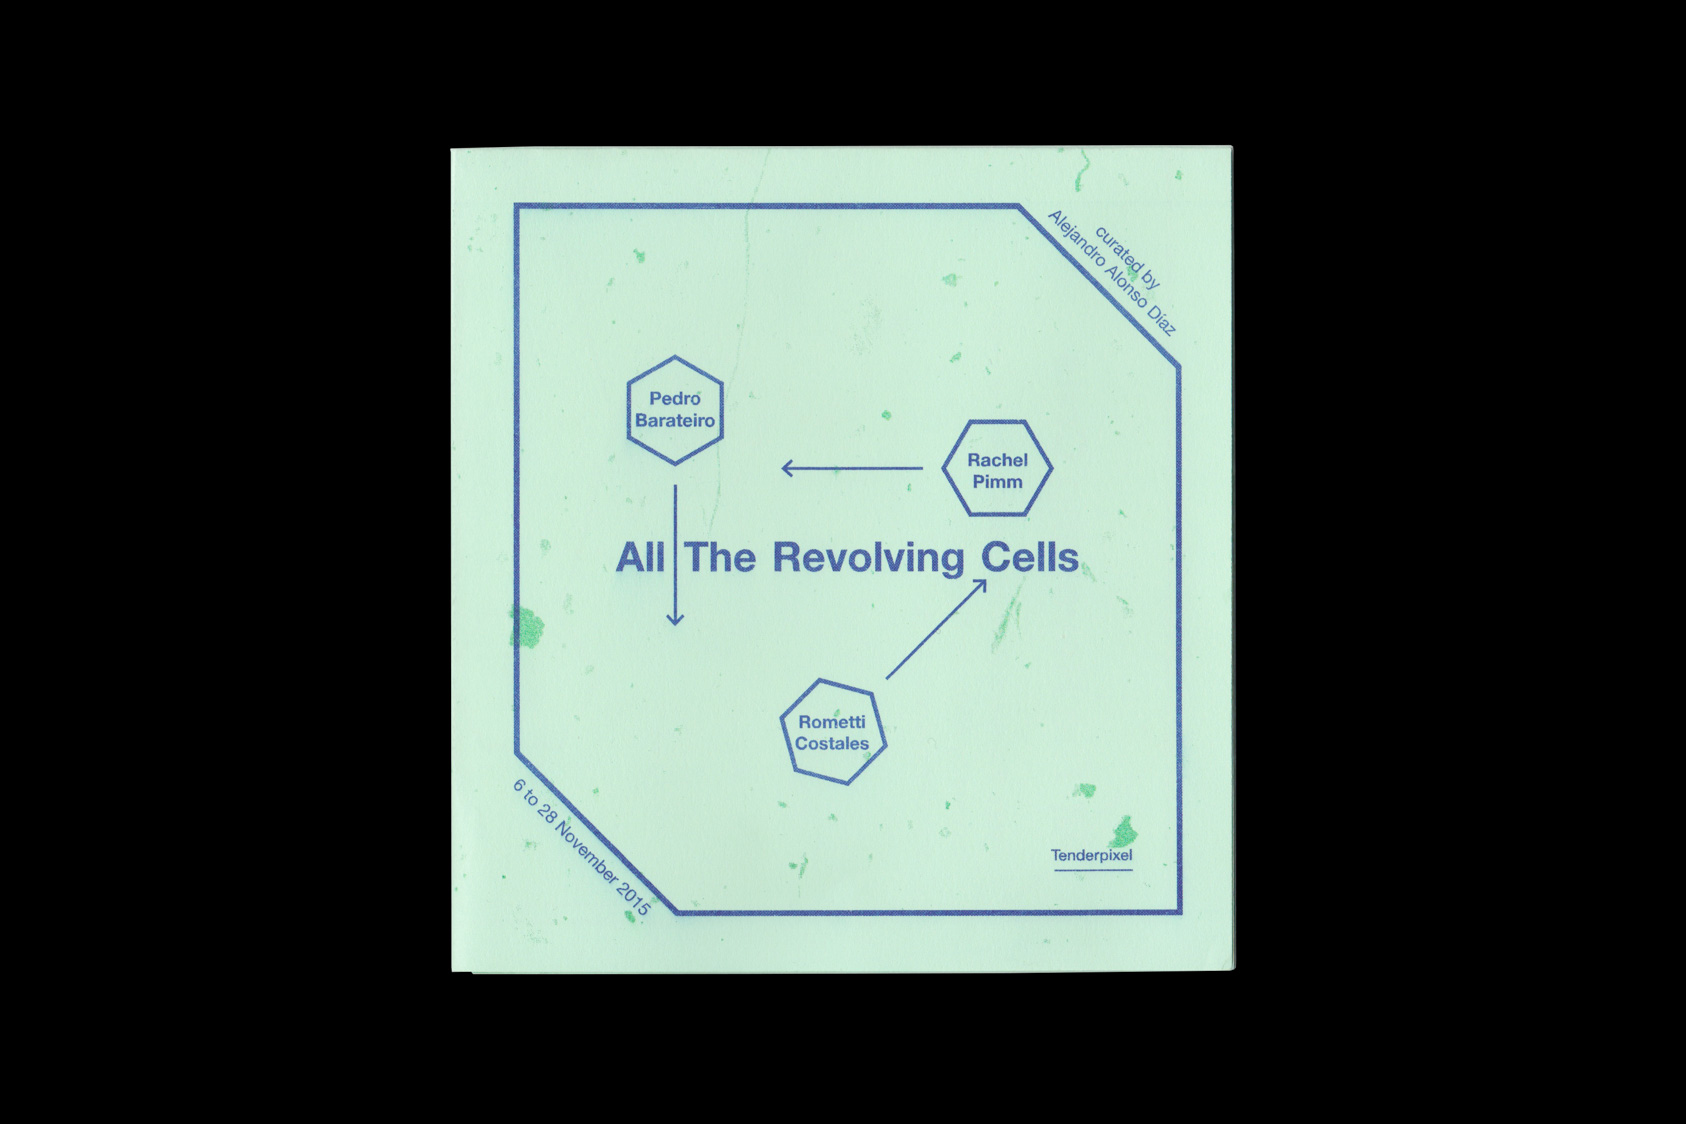 All The Revolving Cells - exhibition handout for Tenderpixel and Alejandro Alonso Diaz, 2015 by the agency for emerging ideas